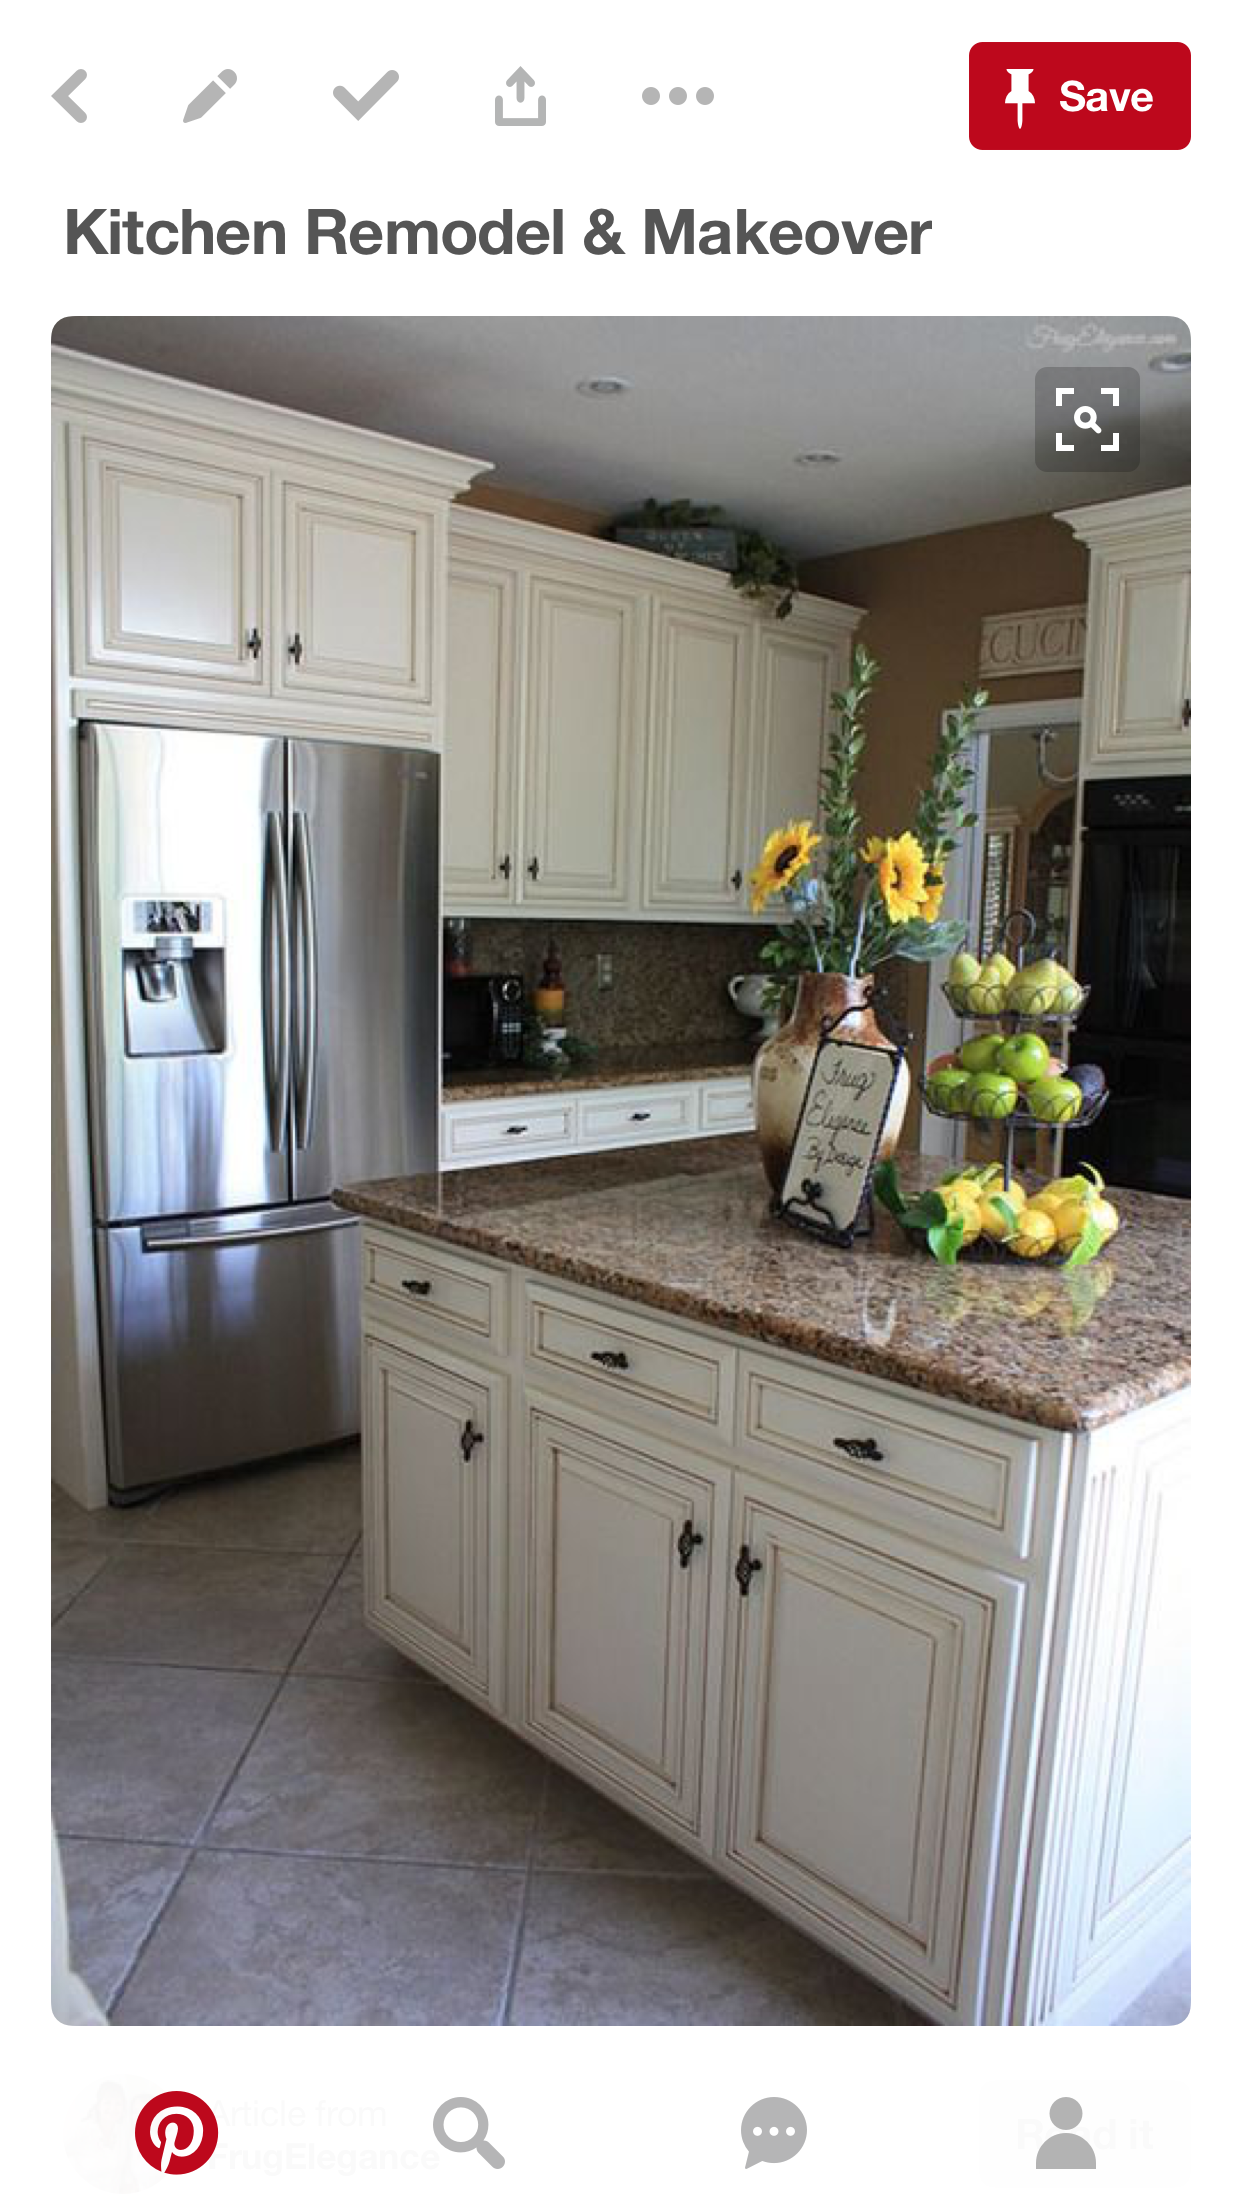 Pin by Kacey Hollingsworth on Final decisions   Pinterest White Ideas To Redo Your Kitchen on hgtv kitchen ideas, kitchen countertop ideas on a budget, kitchen improvement ideas, kitchen recycle ideas, kitchen fall ideas, kitchen flooring ideas, small kitchen ideas, cheap kitchen ideas, kitchen remodeling ideas, kitchen ideas with tile, kitchen redesign ideas, kitchen renew ideas, kitchen rebuild ideas, cottage kitchen ideas, kitchen cupboard ideas, kitchen decorating on a budget, kitchen redos before and after, kitchen diy ideas, vintage kitchen ideas, kitchen makeover ideas,